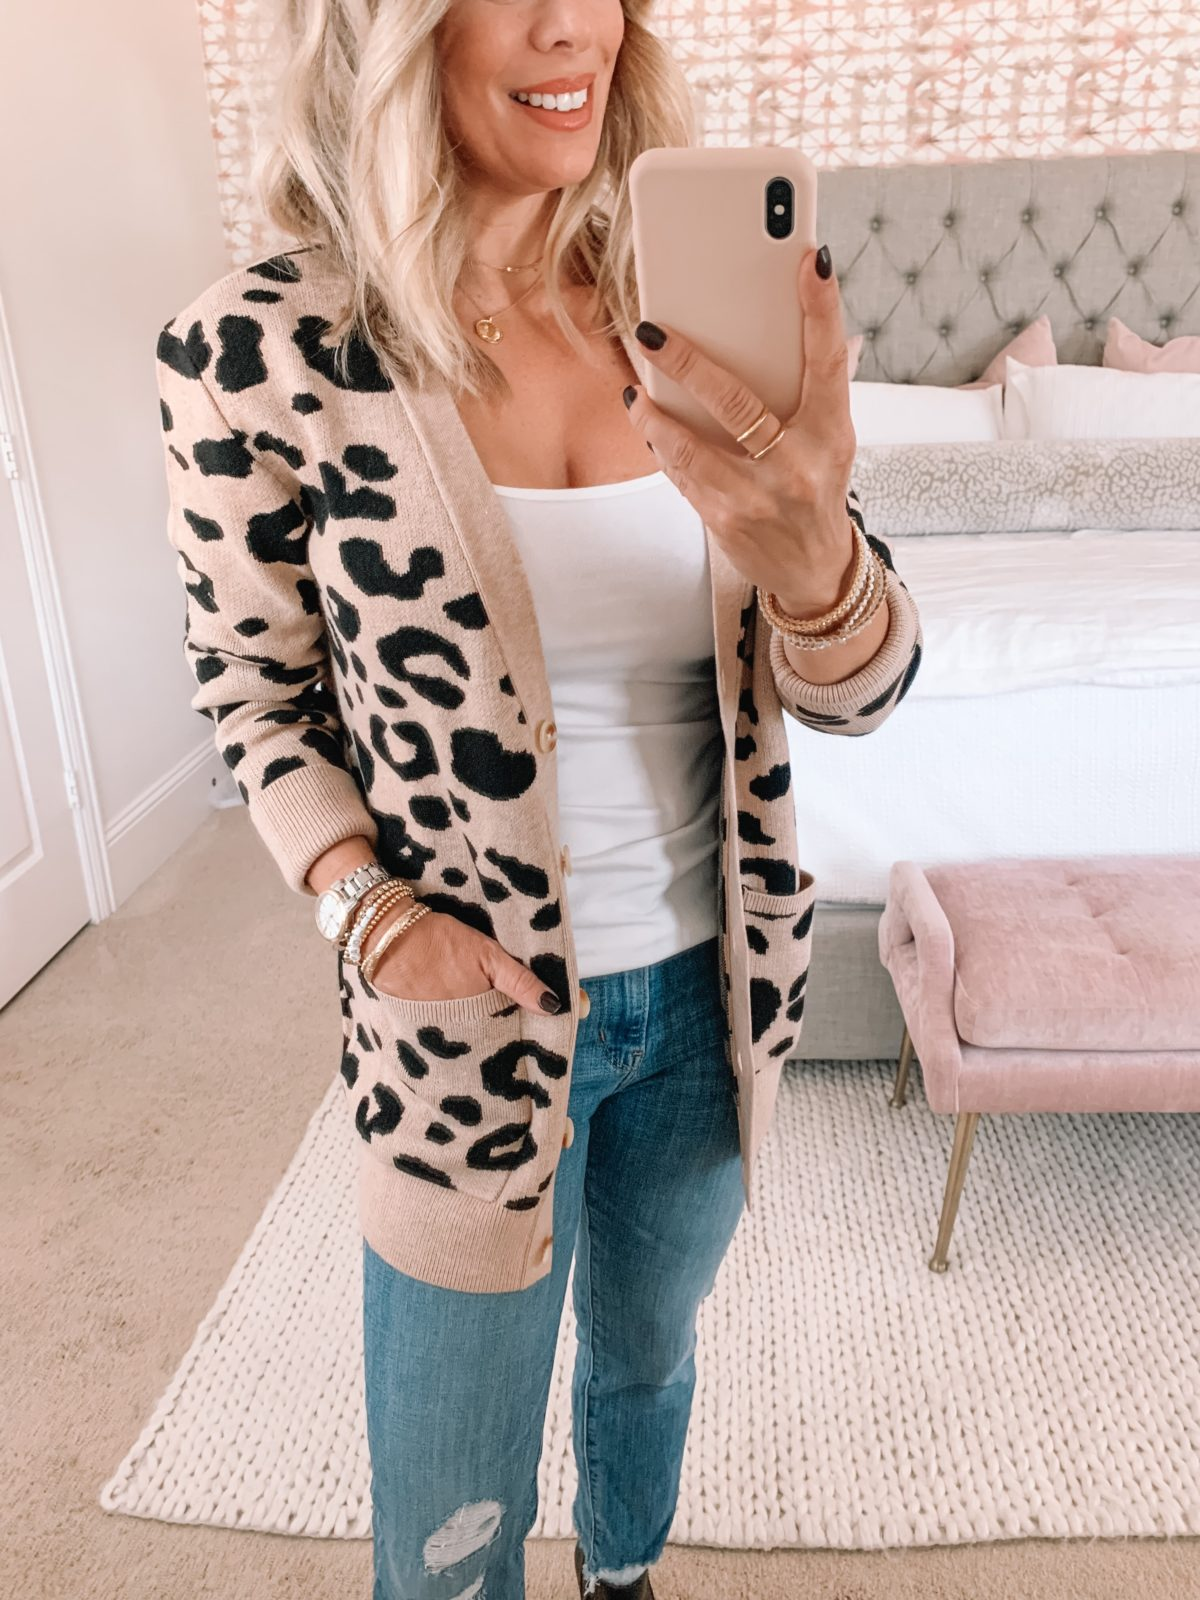 Amazon Fashion Faves, Cami, Leopard Sweater, Jeans, Booties